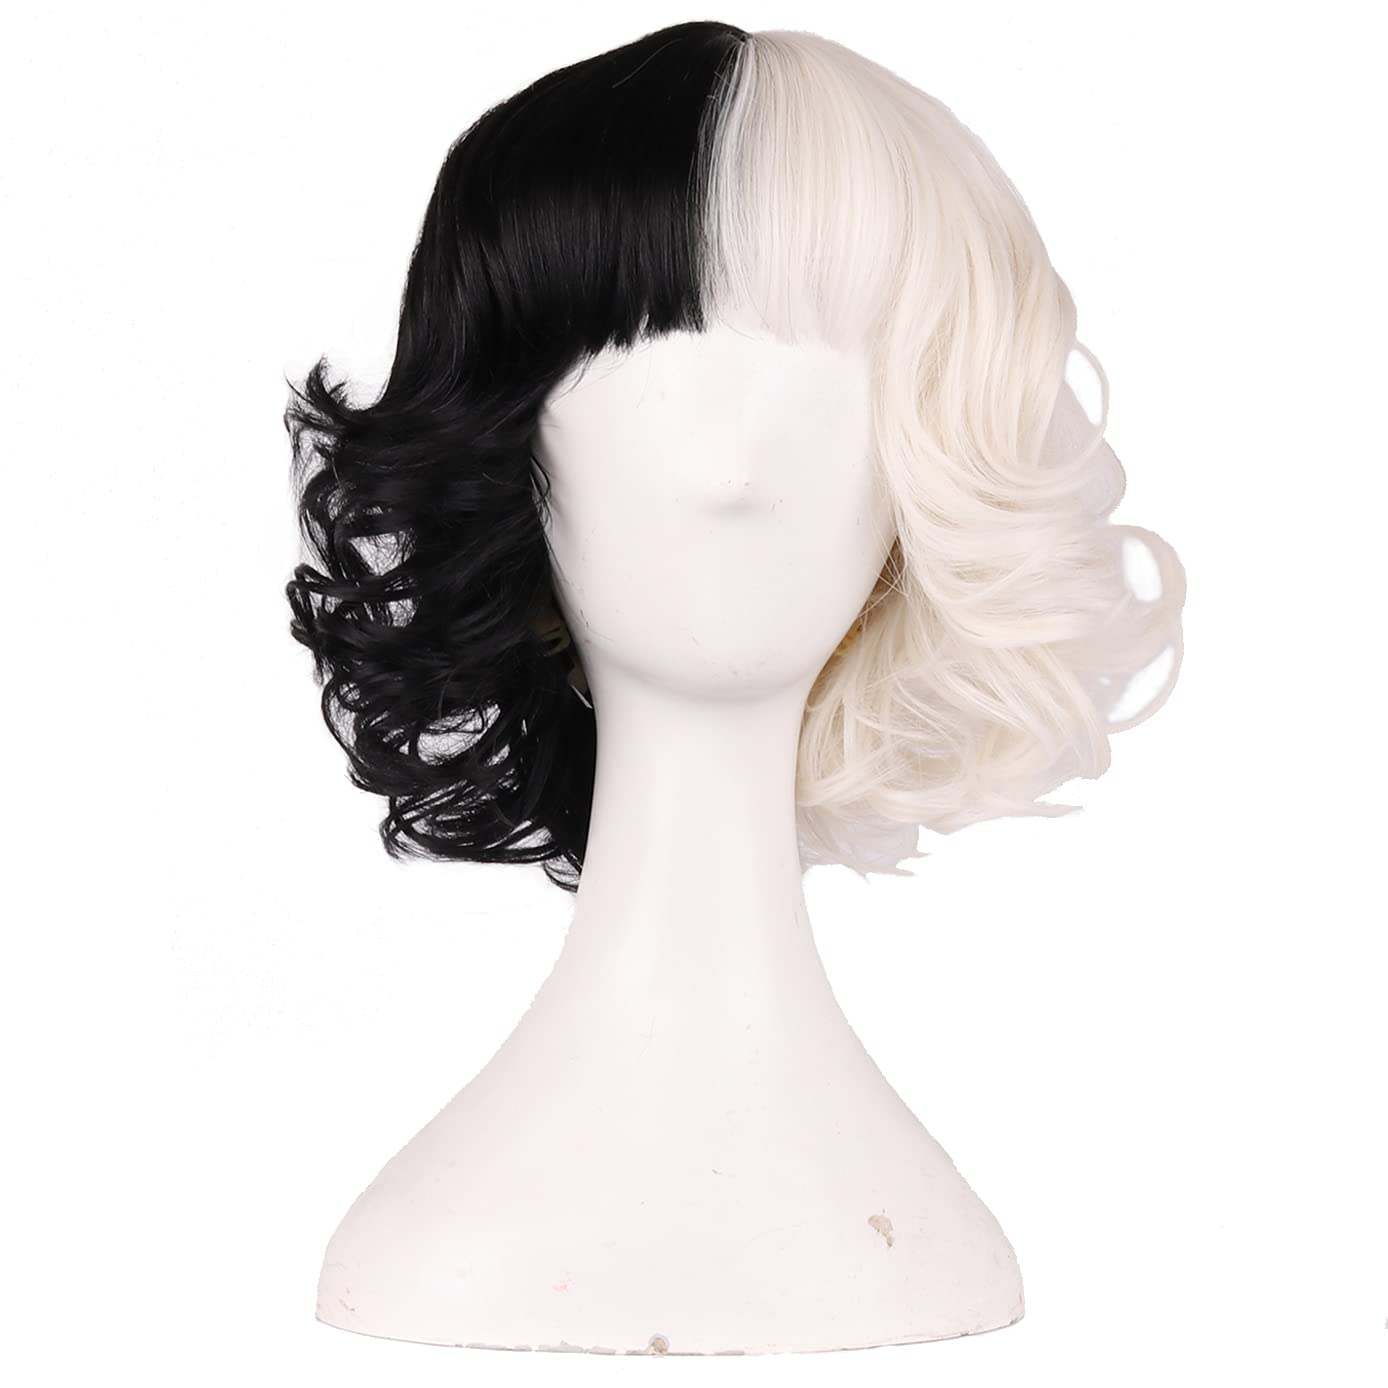 Max 68% OFF BERON Black and White Short Wig Curly H Bob Wavy Super beauty product restock quality top Wigs with Bangs